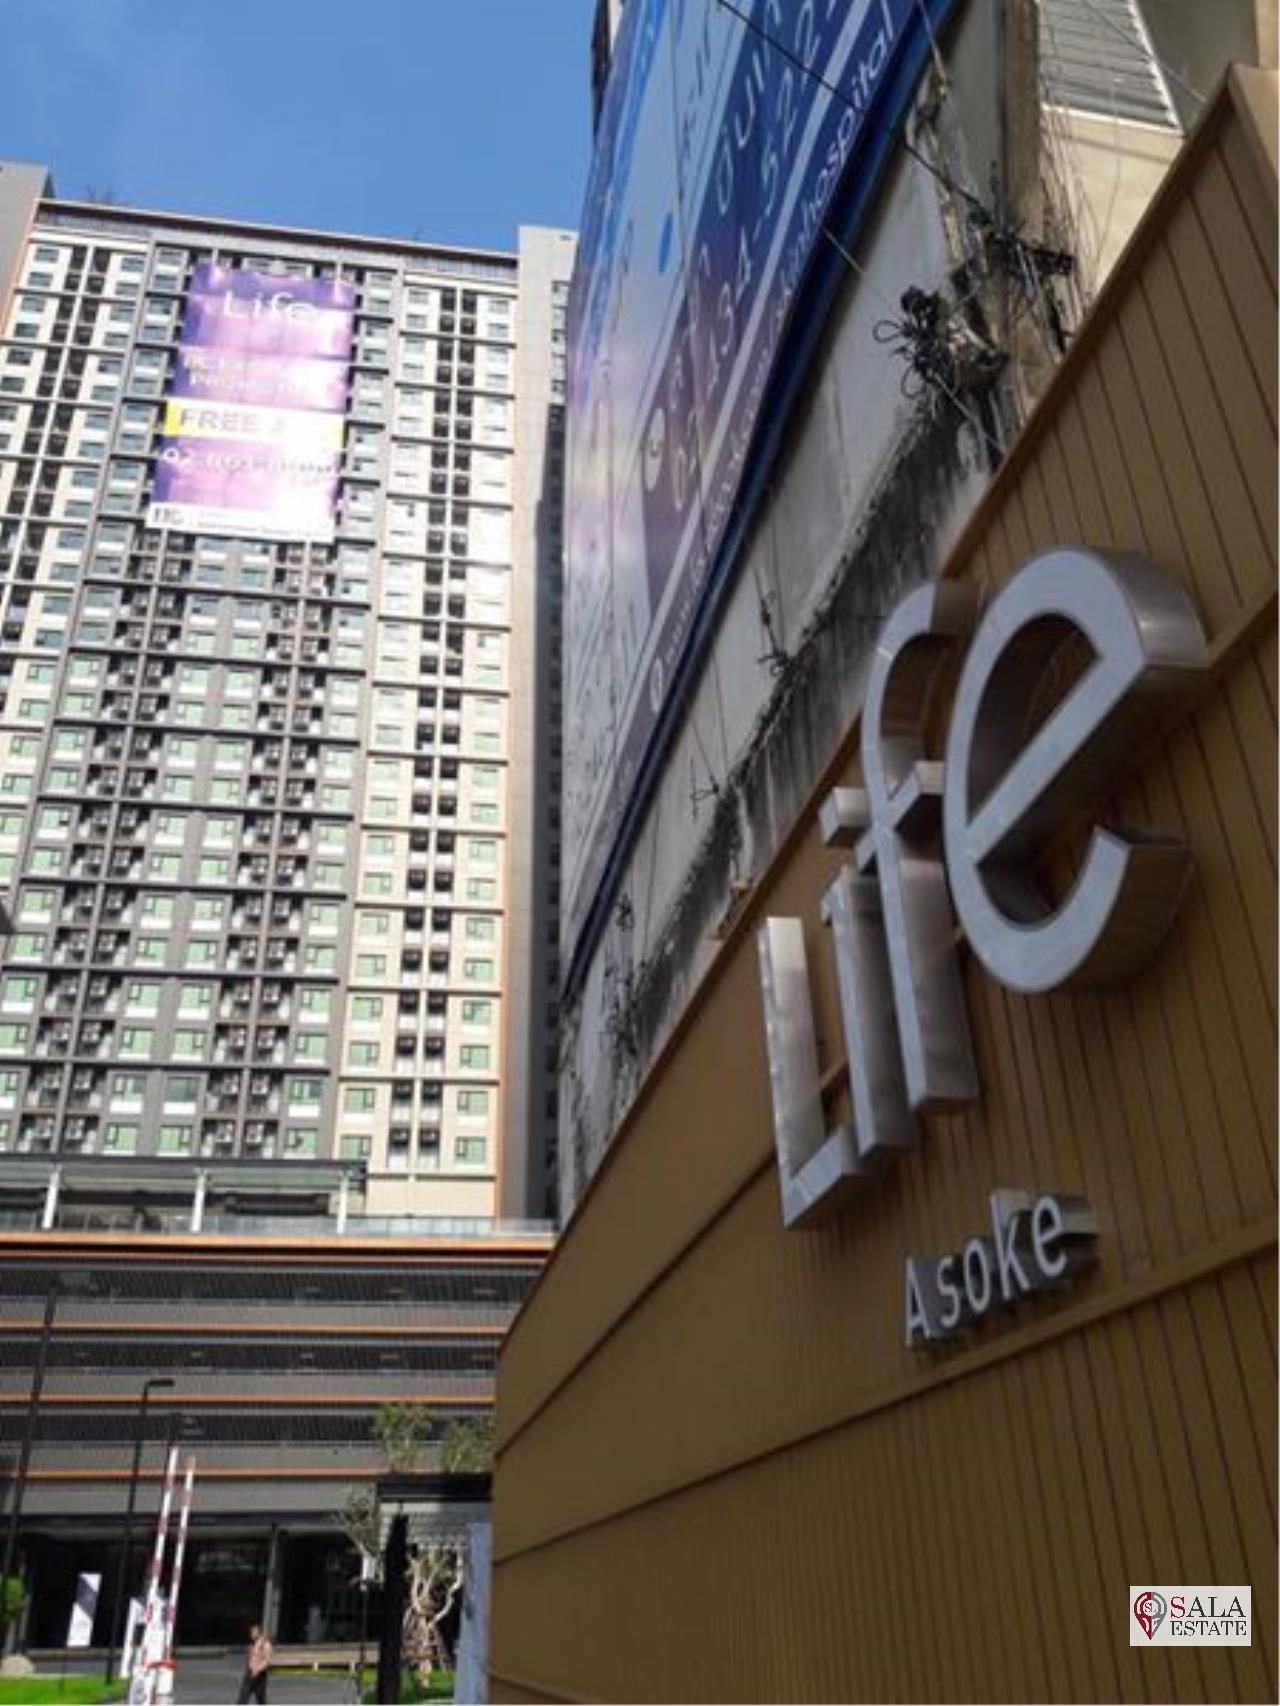 SALA ESTATE Agency's LIFE ASOKE – MRT PHETCHABURI, 1 BEDROOM 1 BATHROOM, FULLY FURNISHED, CITY VIEW 5